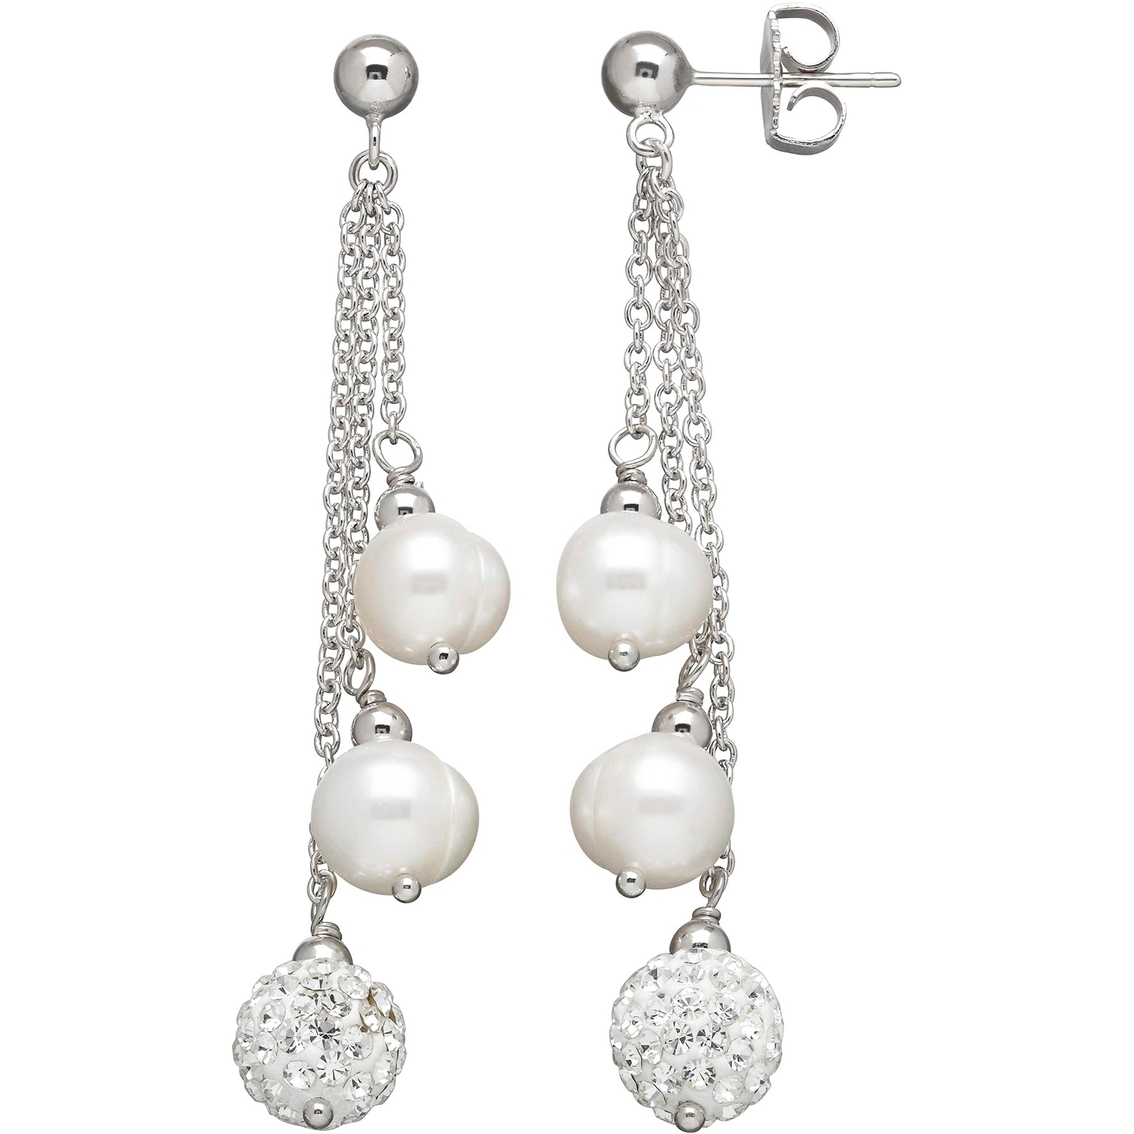 Honora Sterling Silver Freshwater Cultured Pearl And Swarovski Crystal Earrings